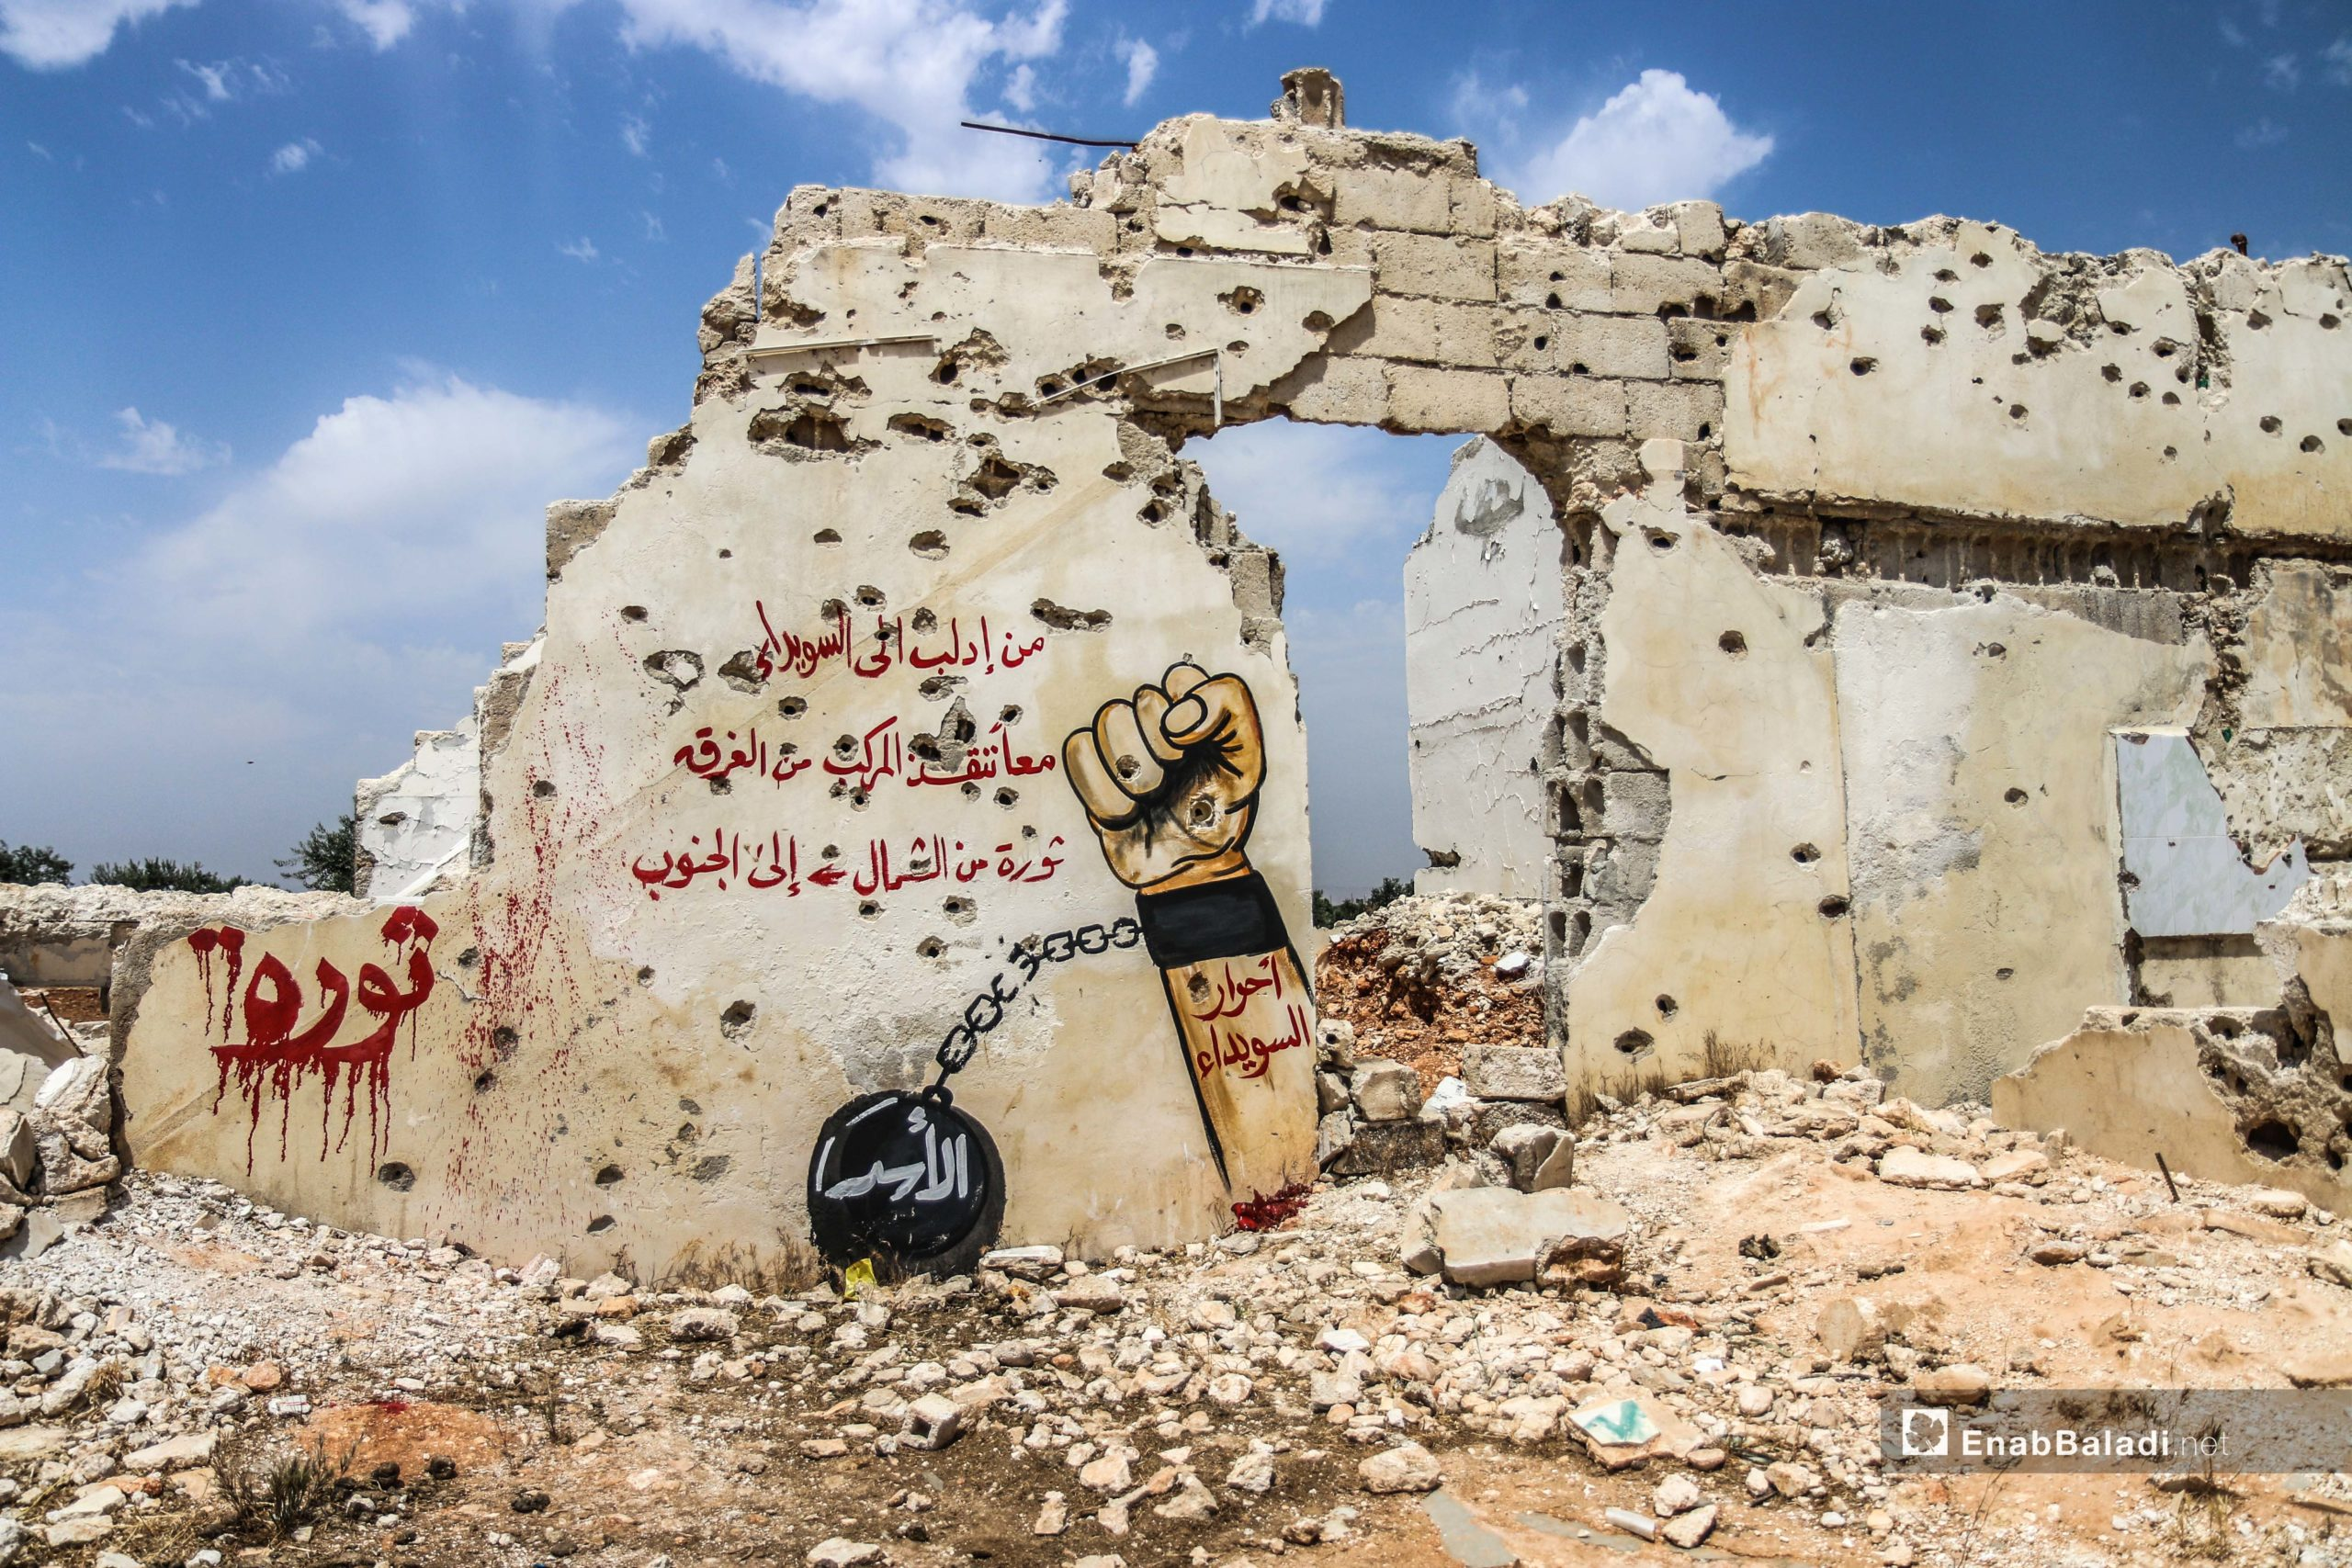 A mural from Idlib in solidarity with the demonstrations in As-Suwayda province – 08 June 2020 (Enab Baladi - Yousef Ghuraibi)